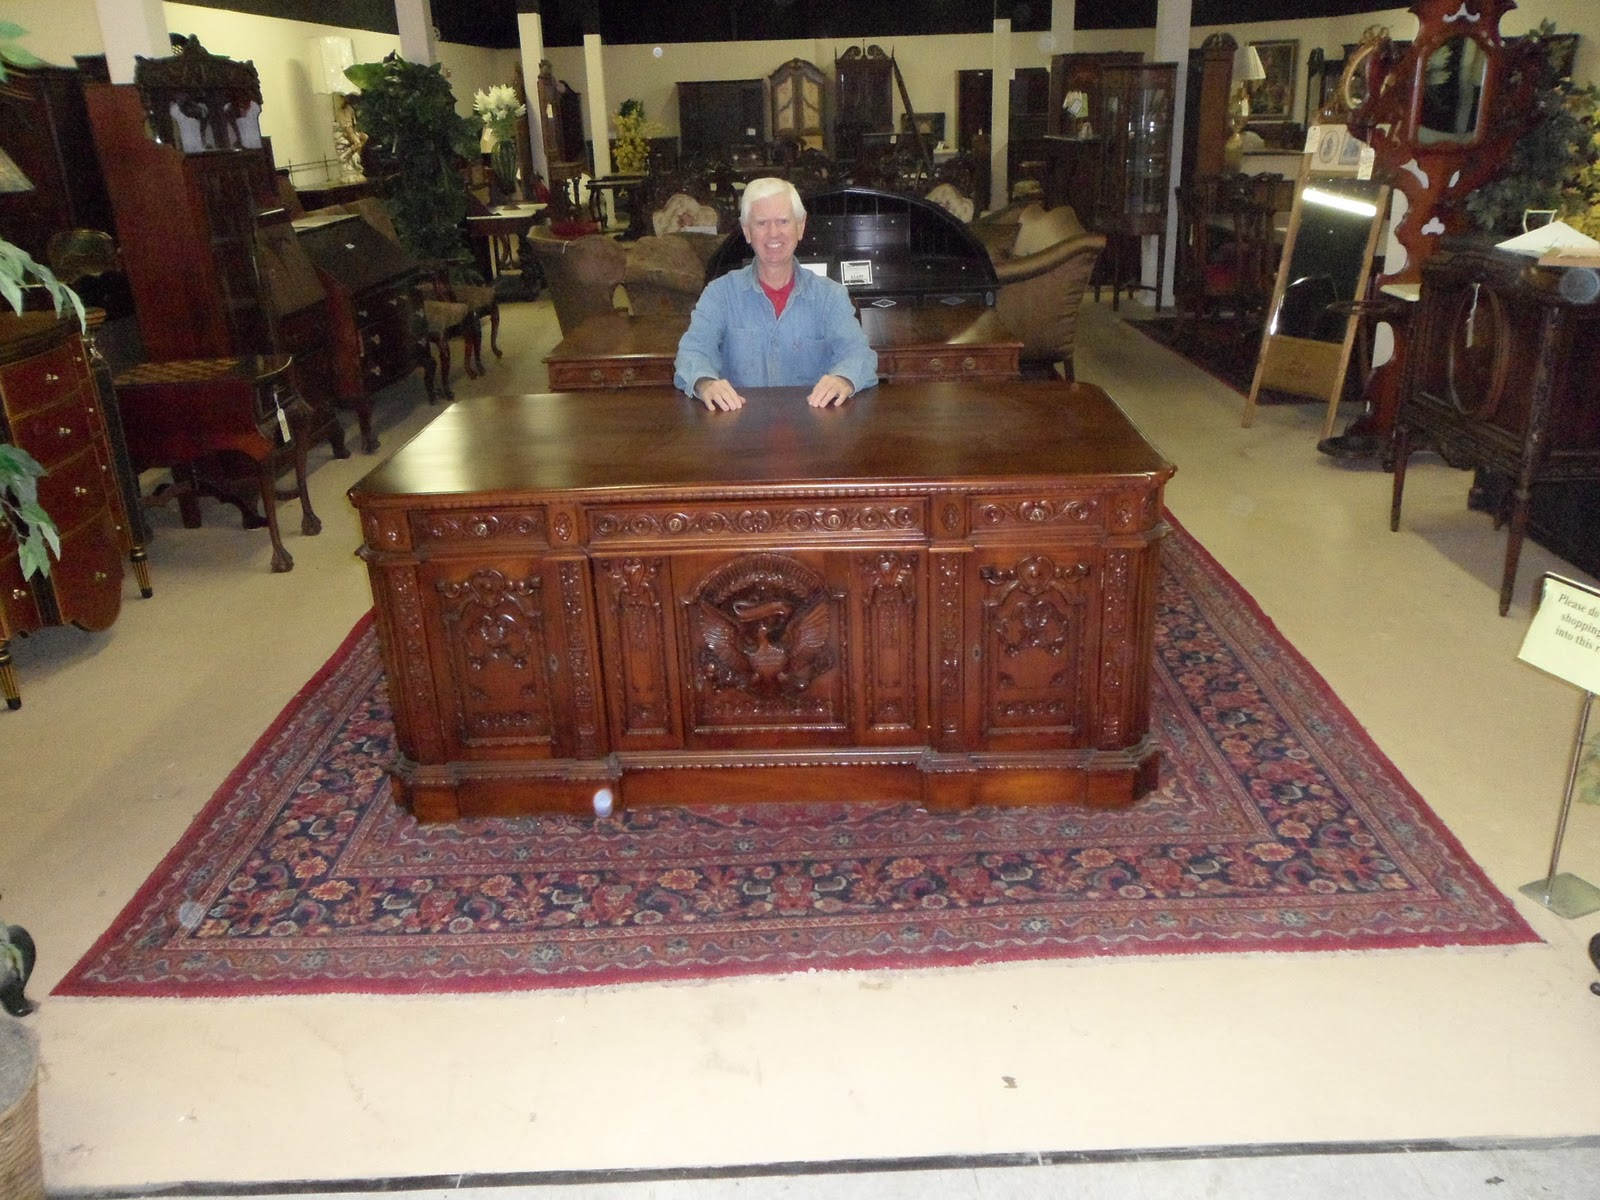 Replica Of A Resolute Desk On Display In An Antique Store